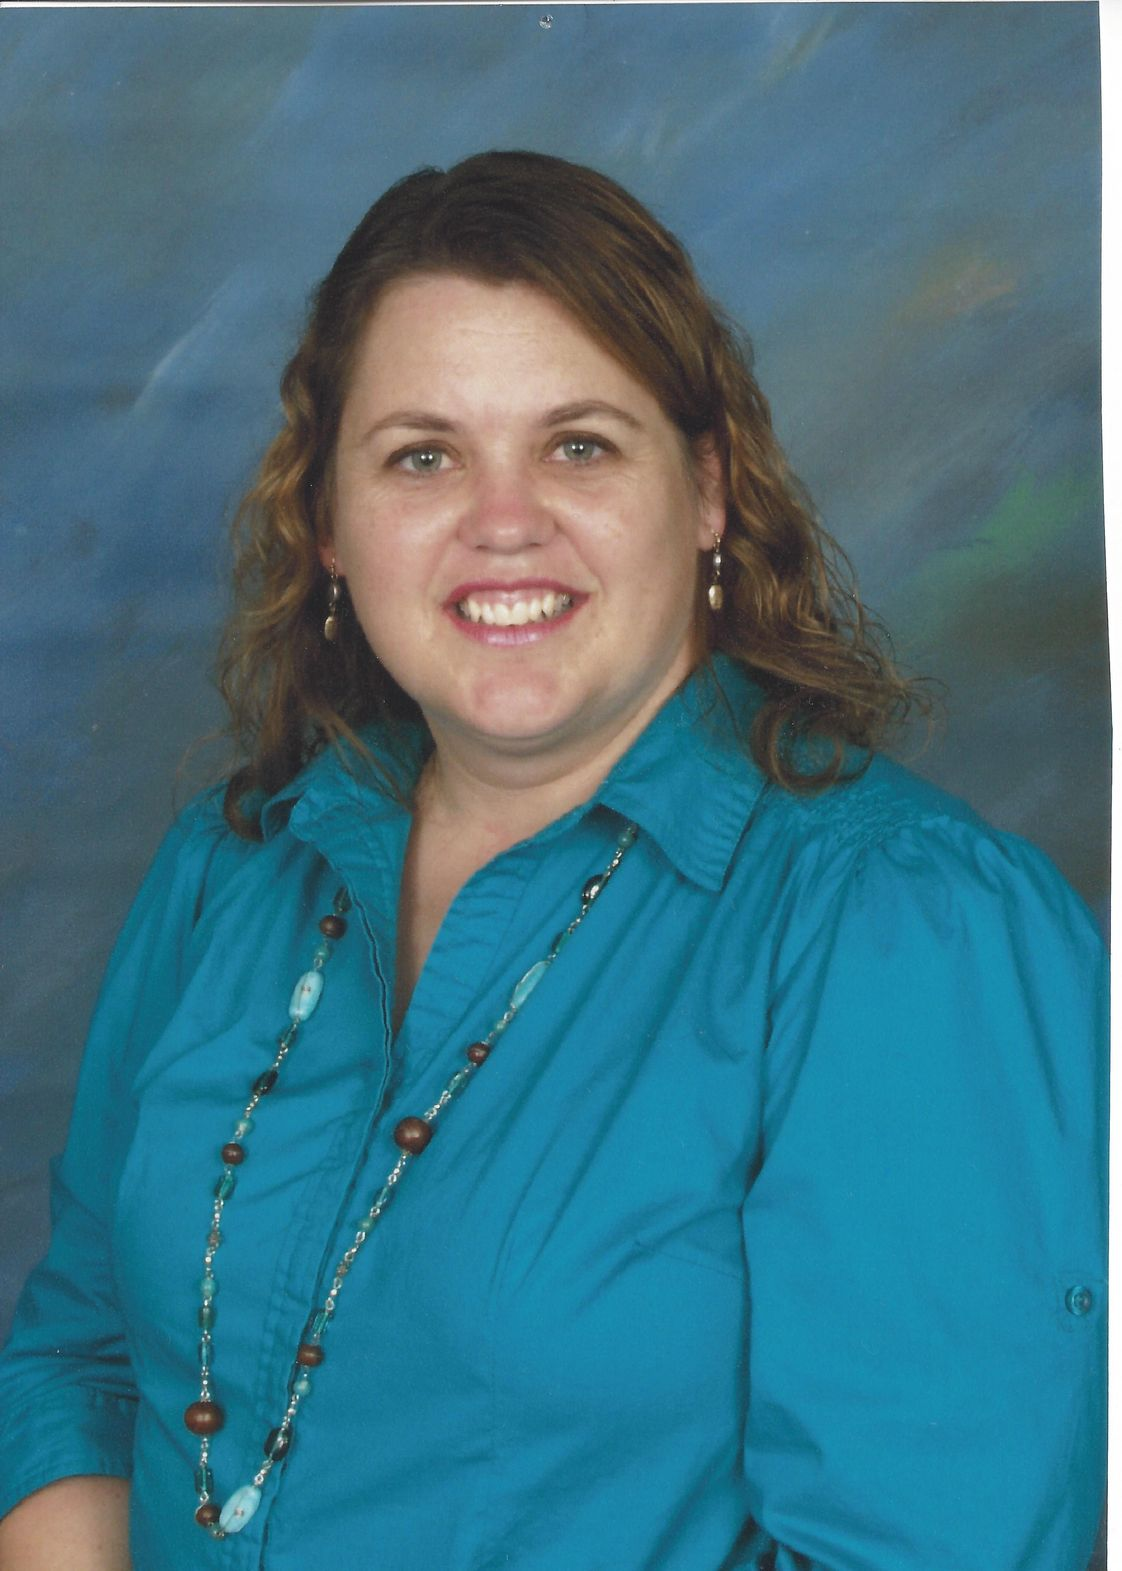 First Baptist Preschool Photo - Lisa Hartog - Director